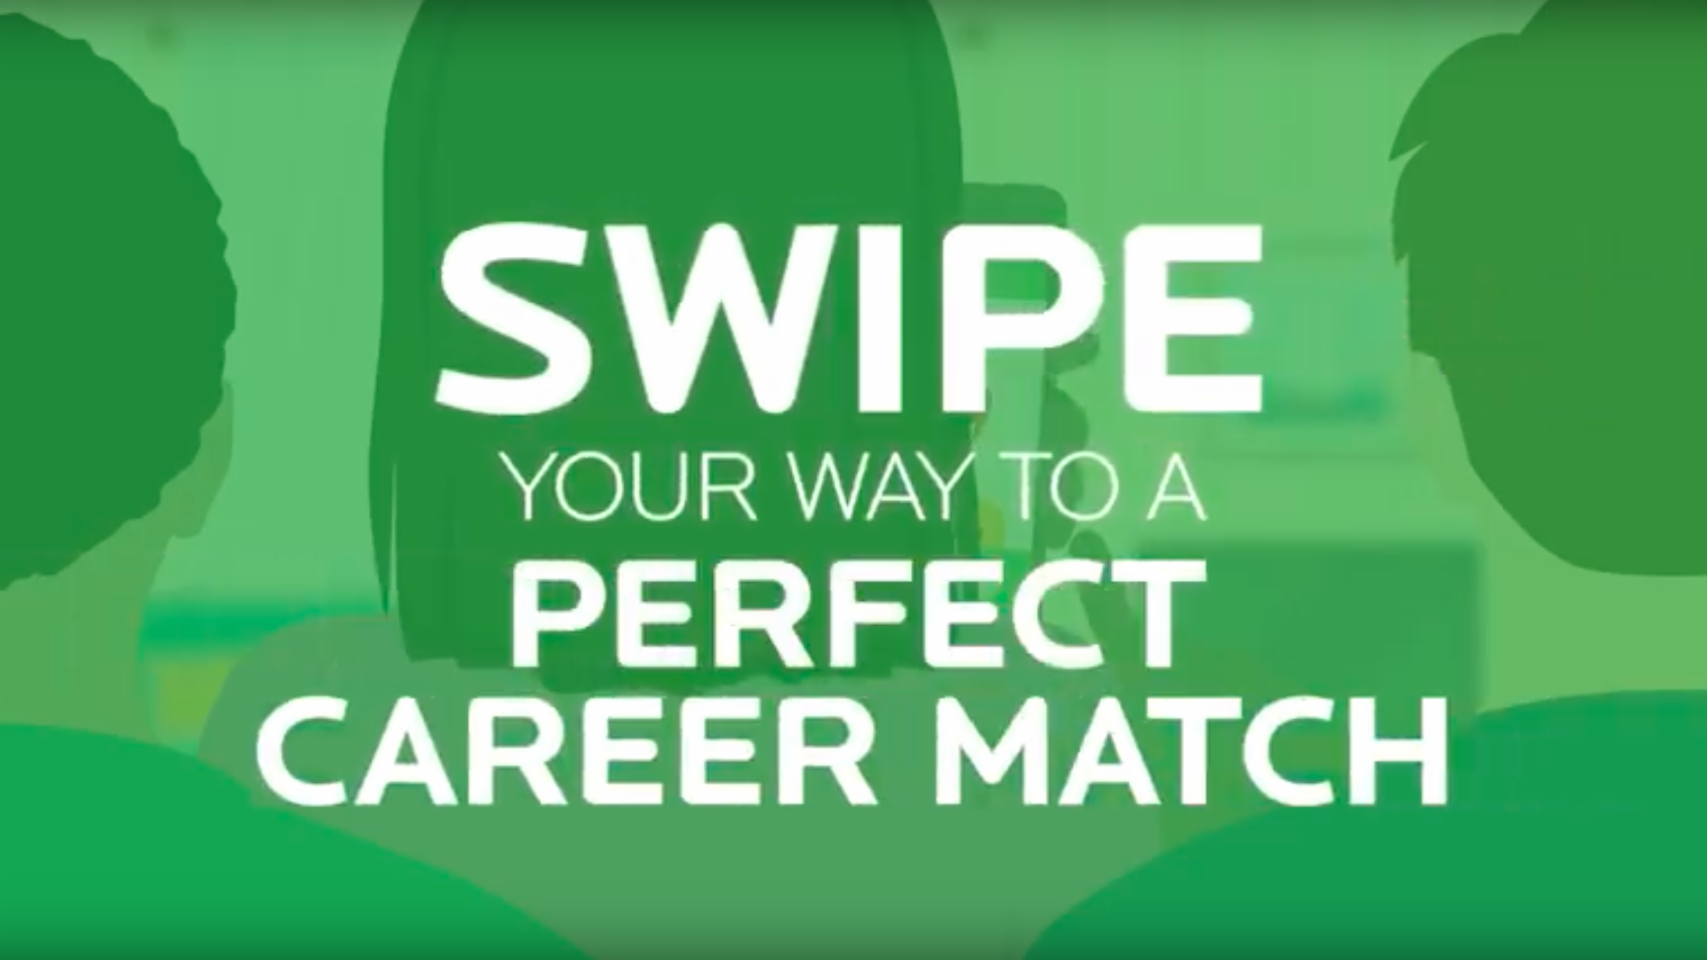 Swipe Your Way to a Perfect Career Match in the Landscaping Industry